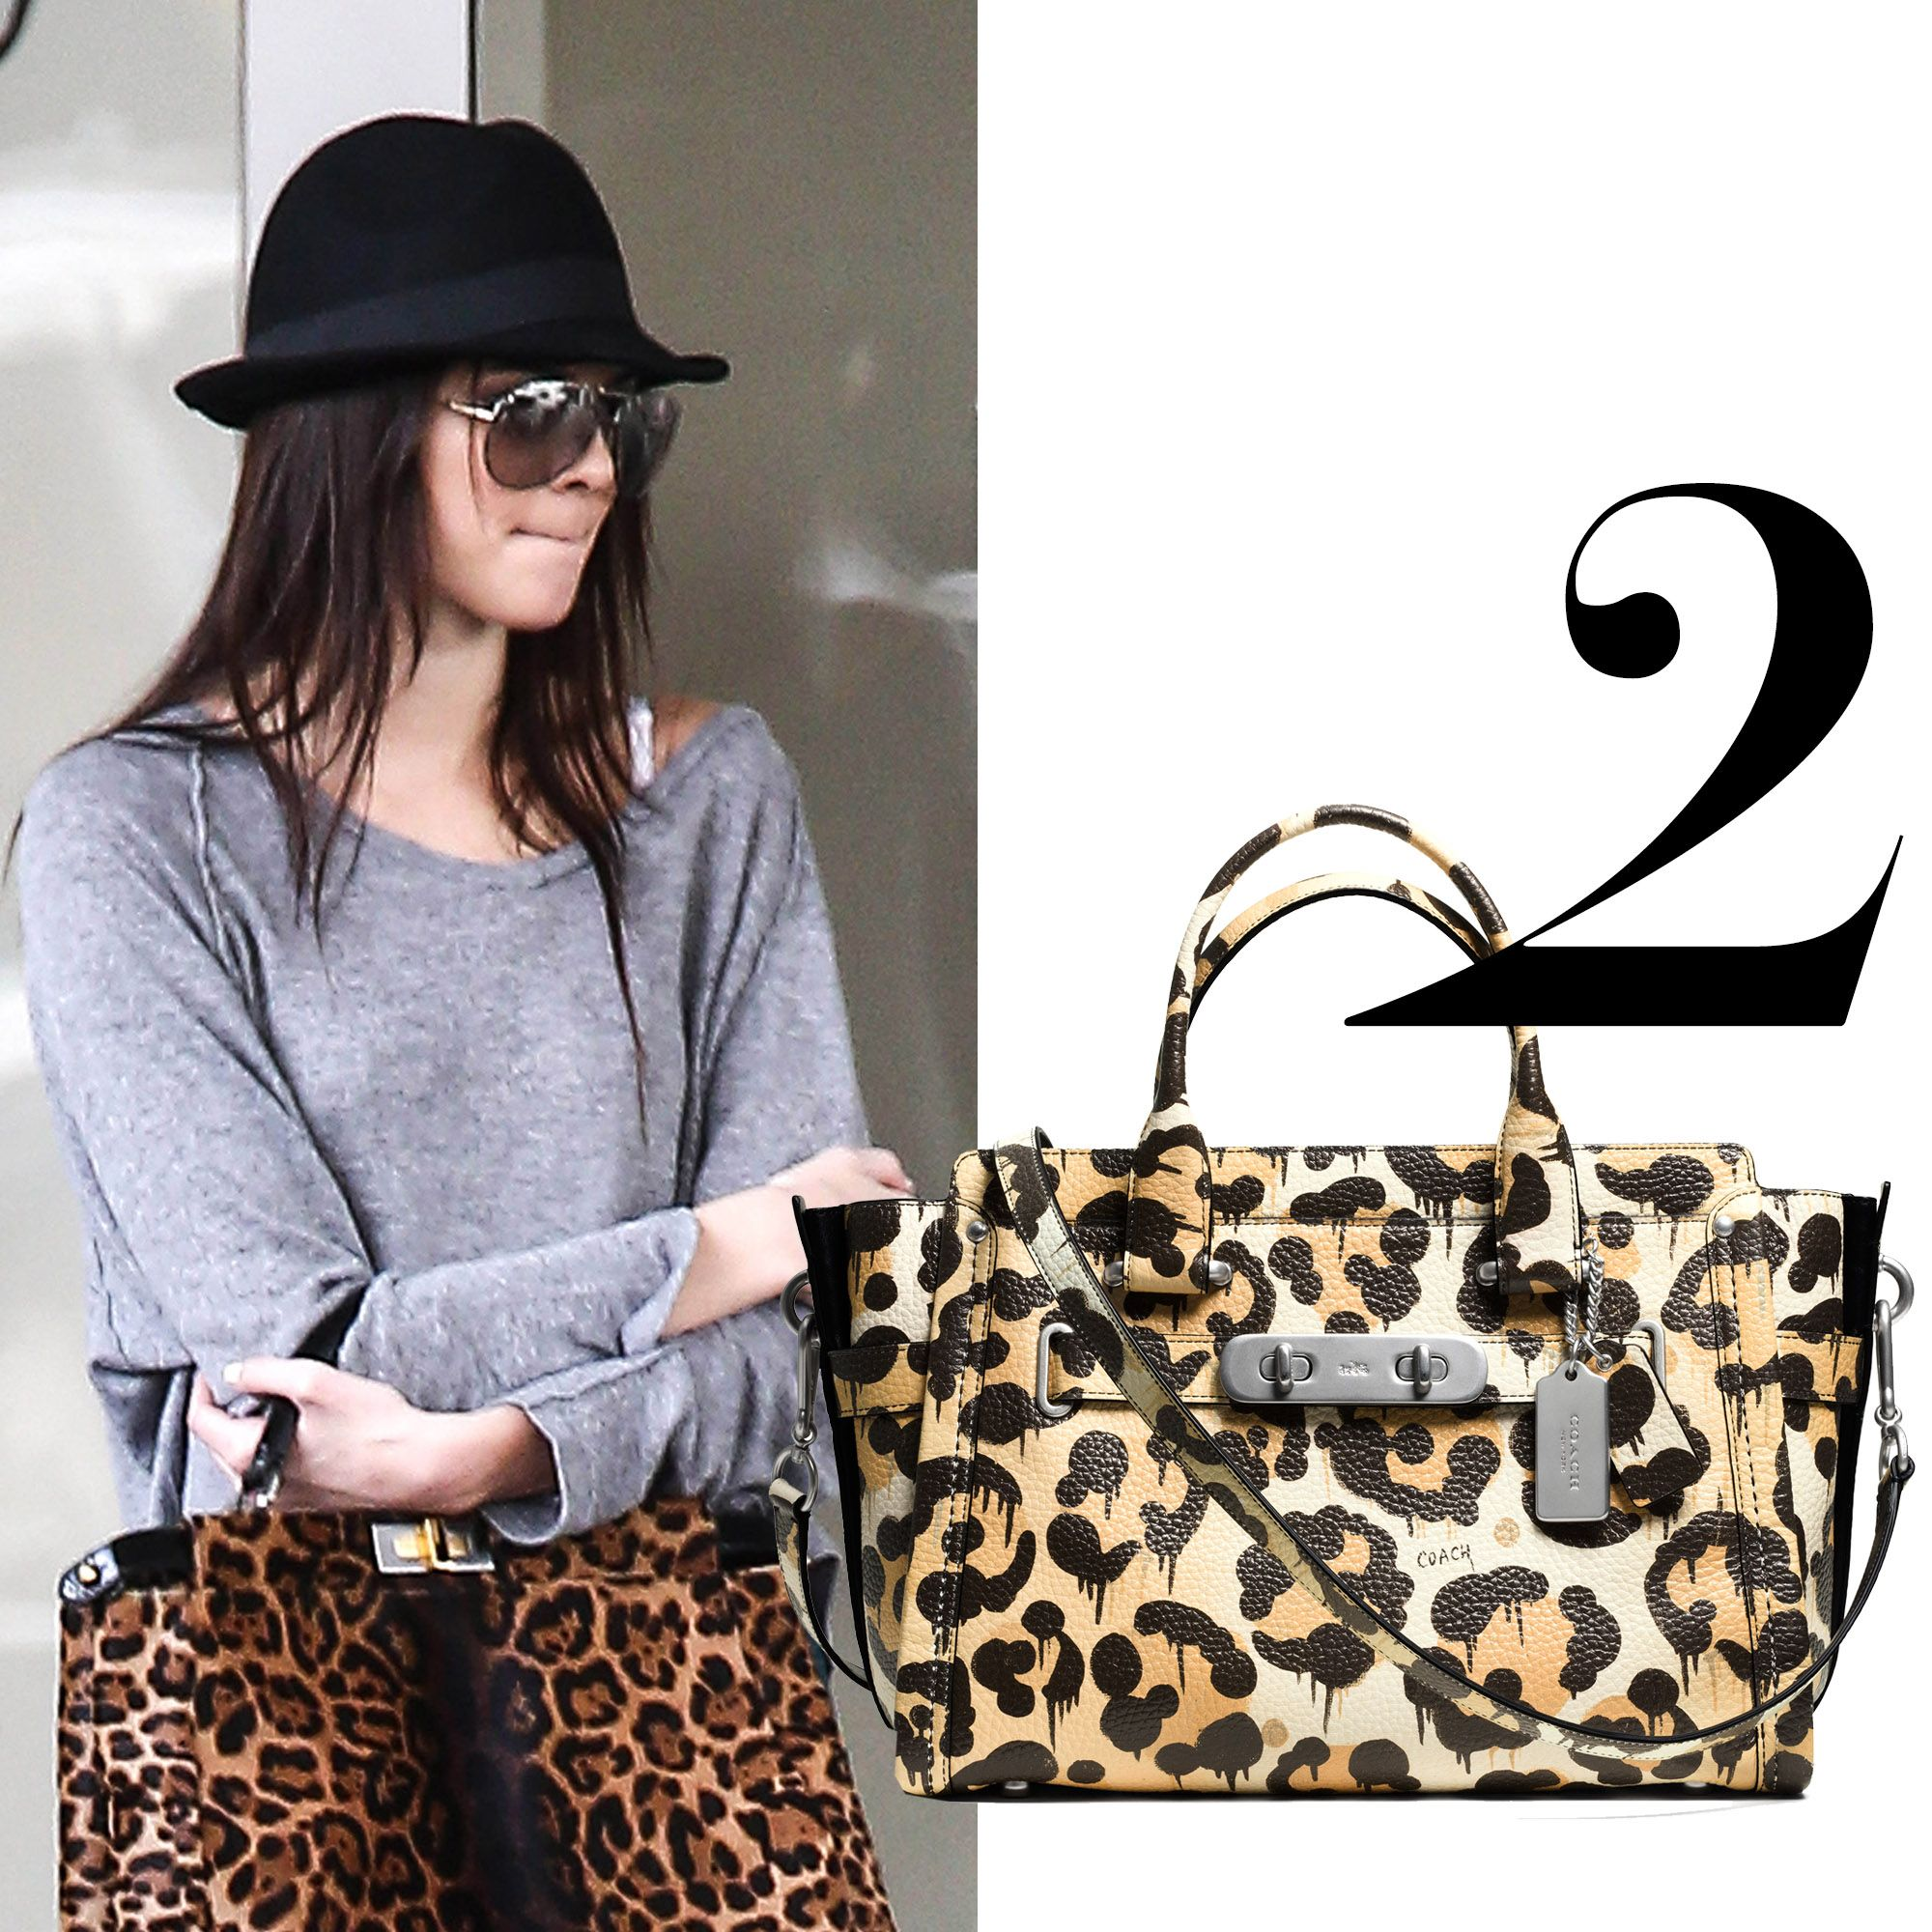 "<em>Coach Swagger bag, $650, <a href=""http://www.coach.com/coach-designer-handbags-coach-swagger-carryall-in-wild-beast-print-pebble-leather/35800.html?cgid=women-handbags-satchels&amp&#x3B;dwvar_color=WRNAT&amp&#x3B;cid=D_B_HBZ_8898"">coach.com</a>.</em>"